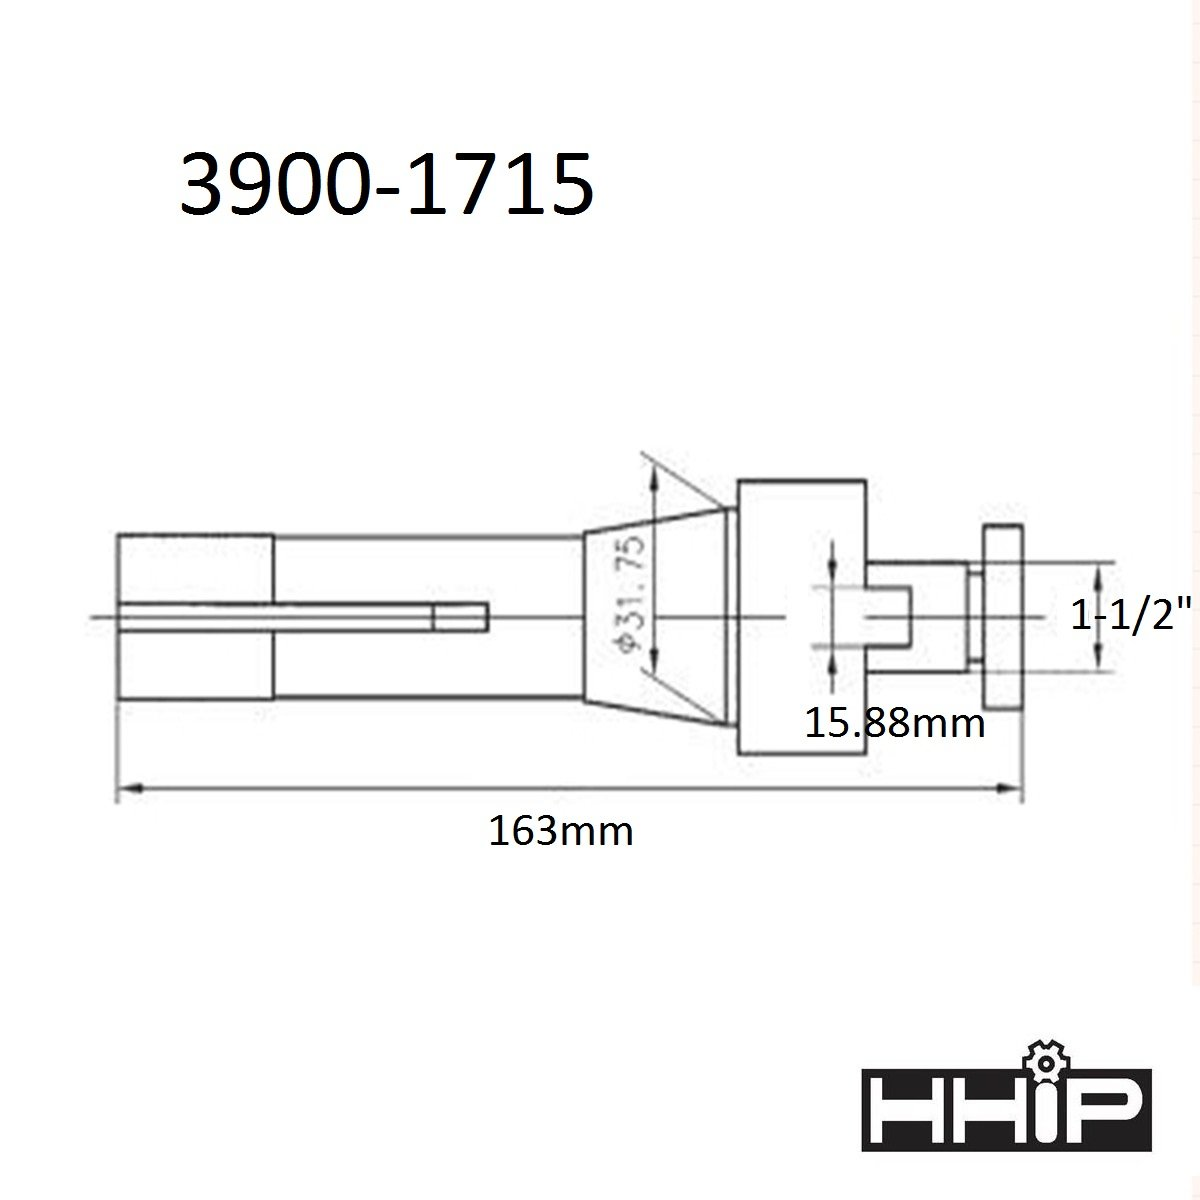 HHIP 1-1/2 INCH R8 SHELL END MILL HOLDER (3900-1715)